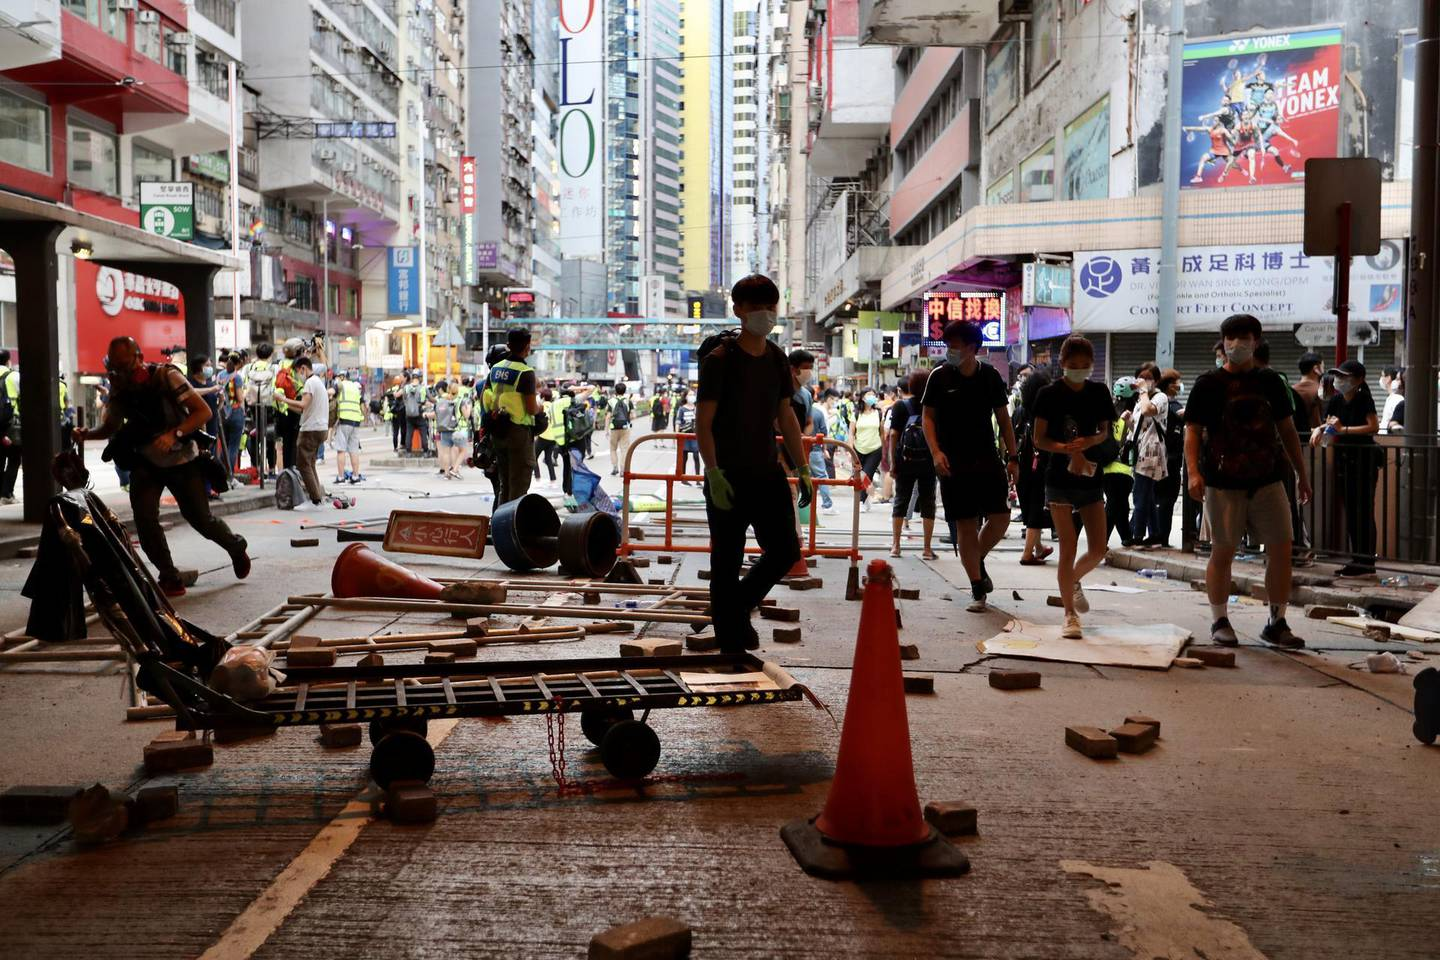 People move around the debris of roadblocks set by protesters during a protest against a planned national security law in the Wan Chai district in Hong Kong, China, on Sunday, May 24, 2020. Almost 200 politicians and legislators from 23 countries issued a joint statement criticizing China's plans to impose a sweeping national security law in Hong Kong, and warned that it could spark more protests in the city, Radio and Television Hong Kongreported. Photographer: May James/Bloomberg